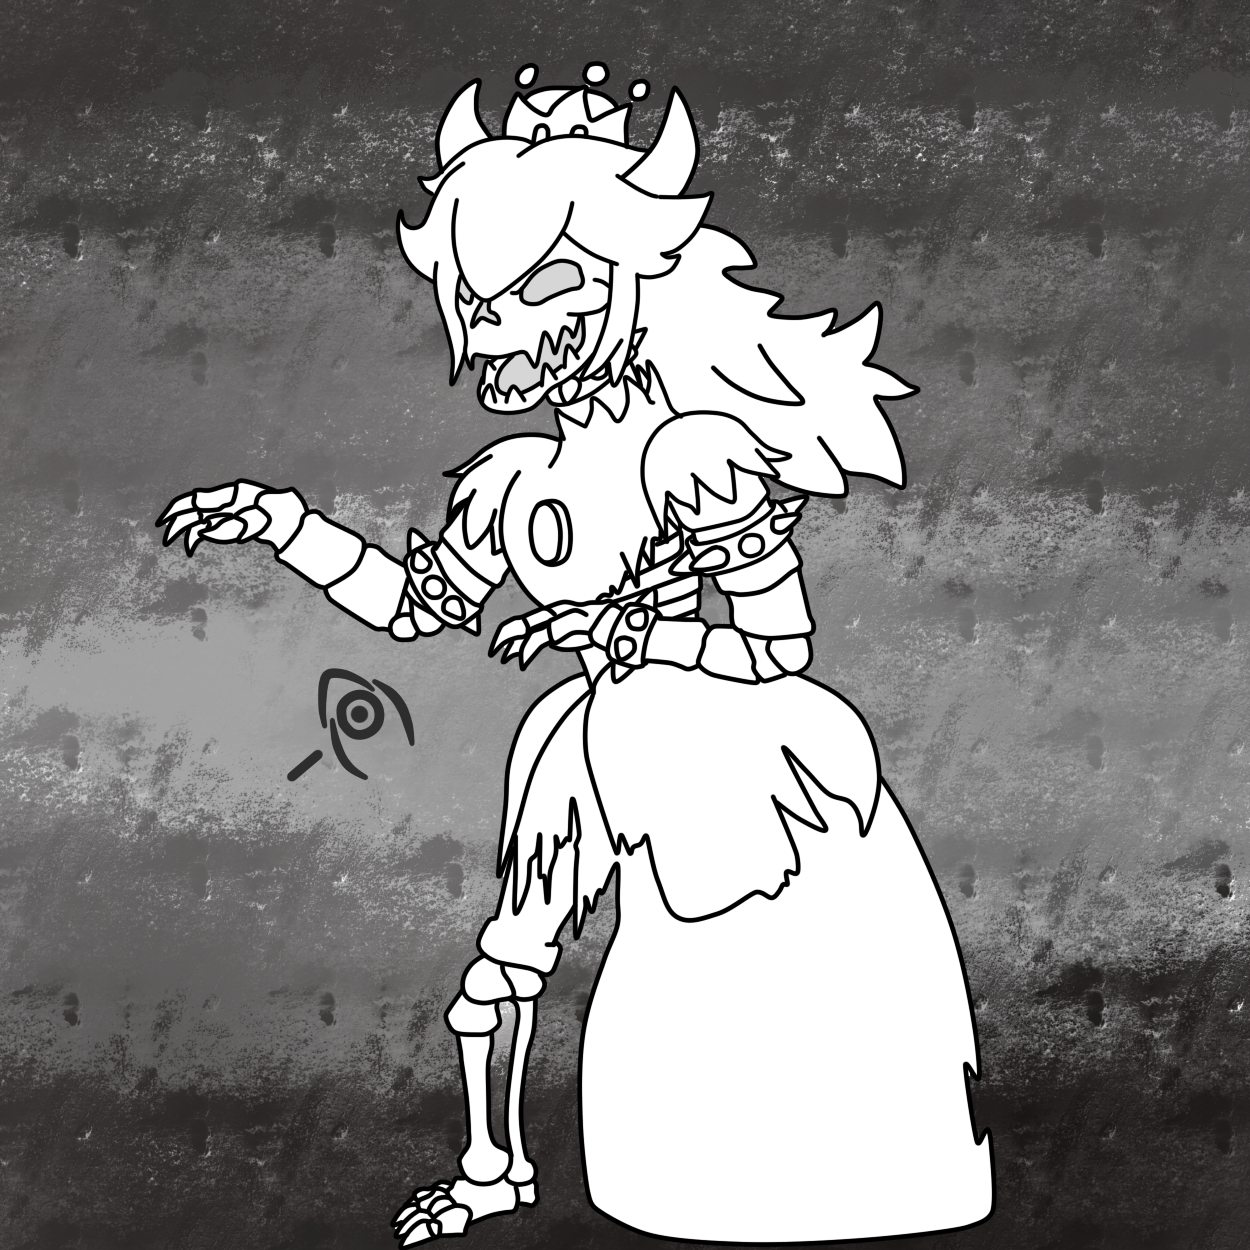 Dry bowsette